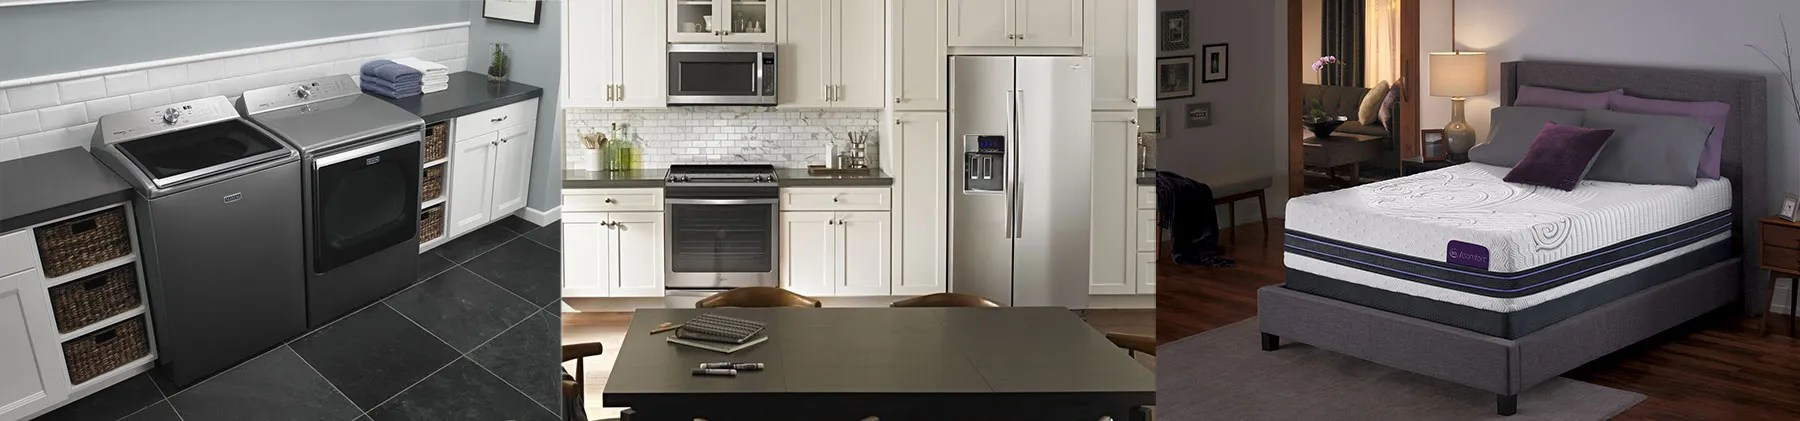 maytag kitchen appliances white island with butcher block top appliance repair murrieta temecula california ca about action page banner